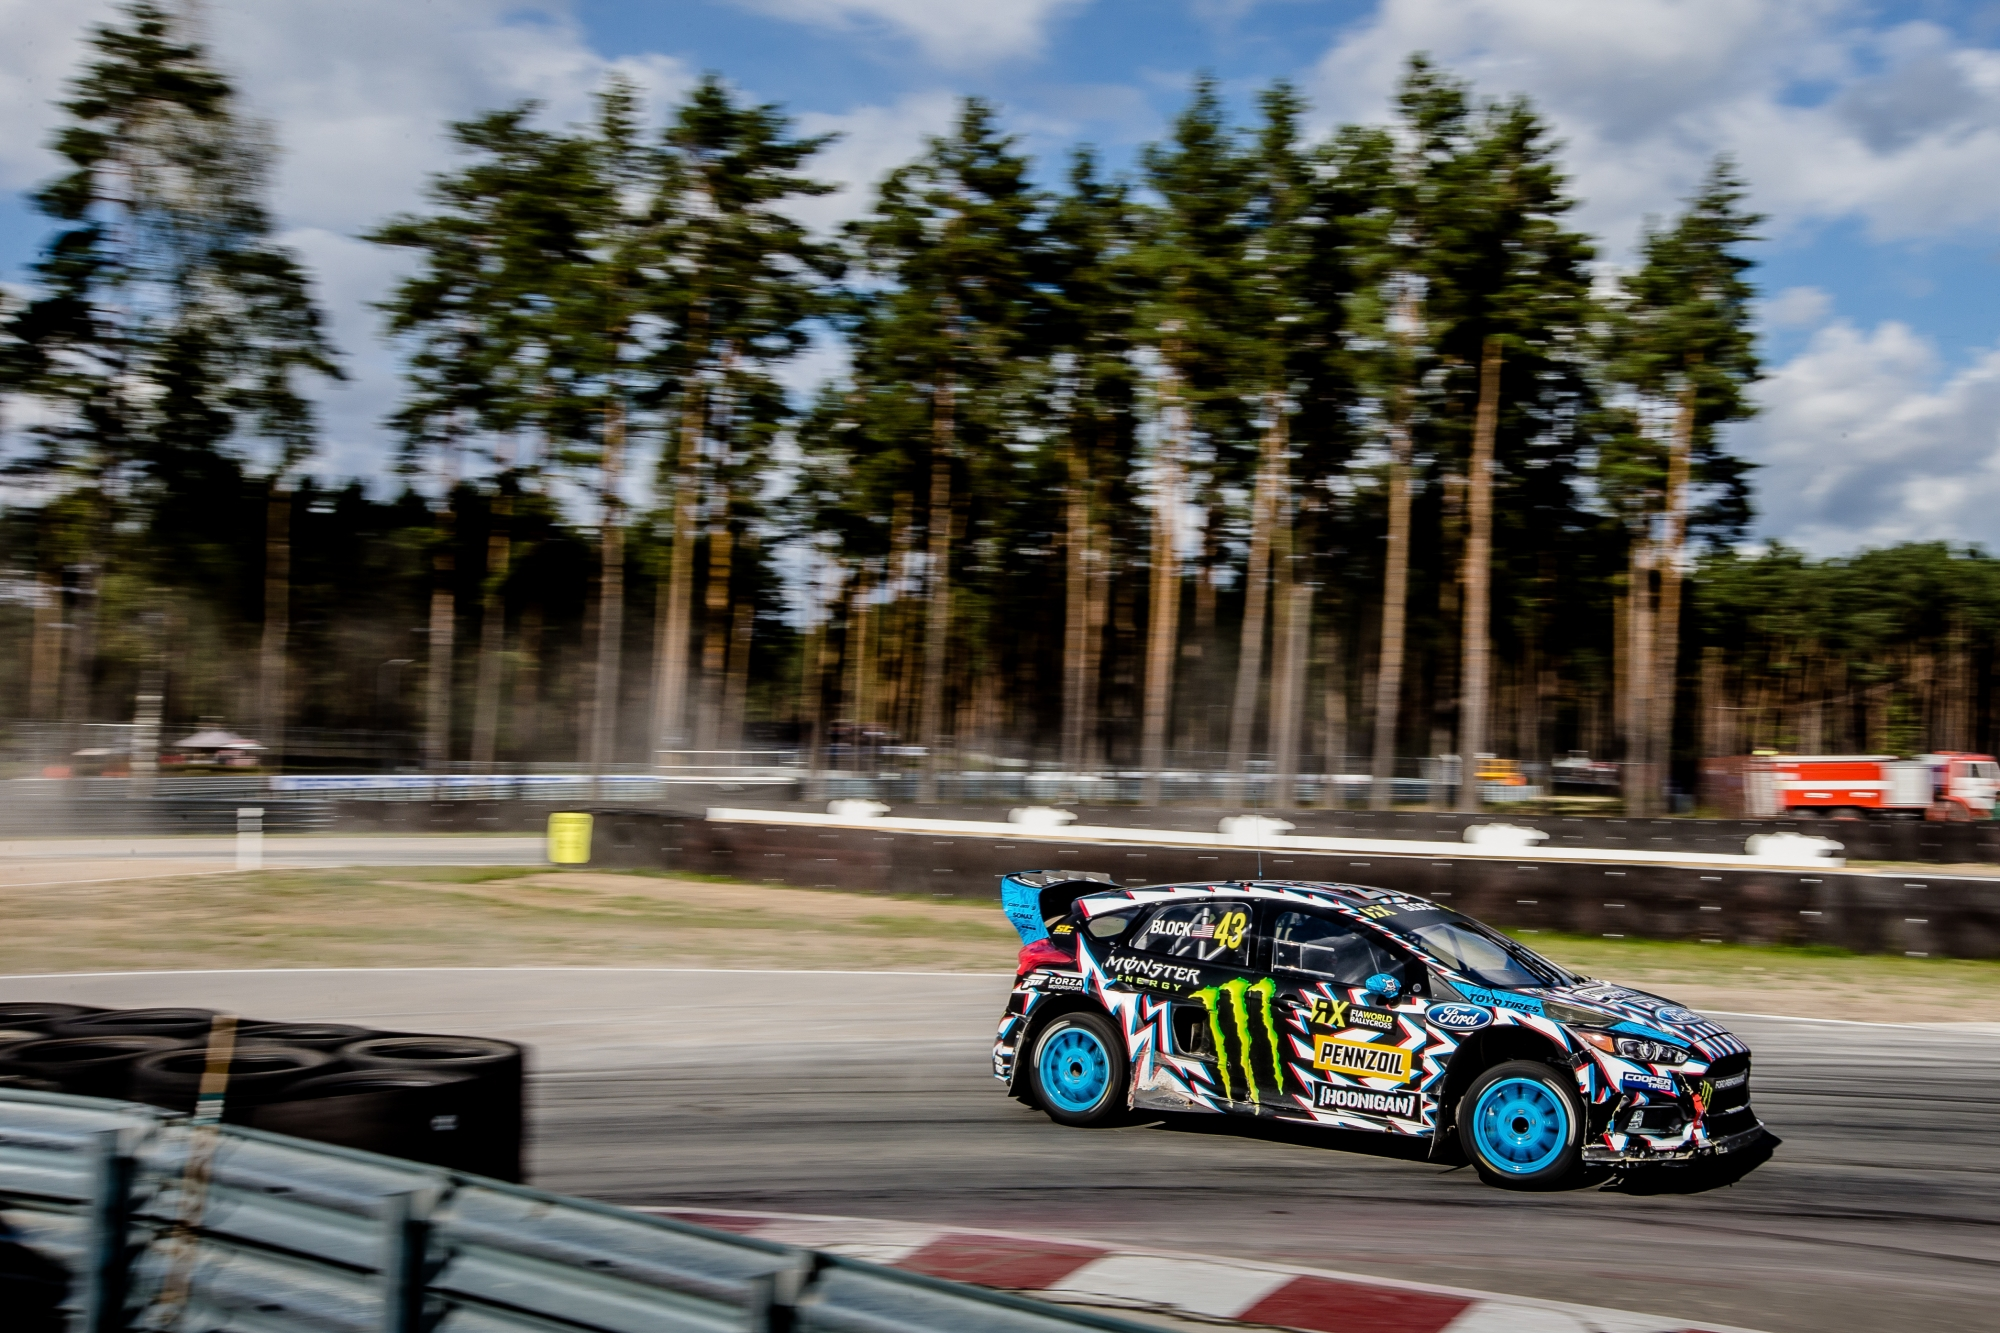 1505978551_Block_WorldRX_2017_Latvia_MCH_0068-e1505985511124.jpg